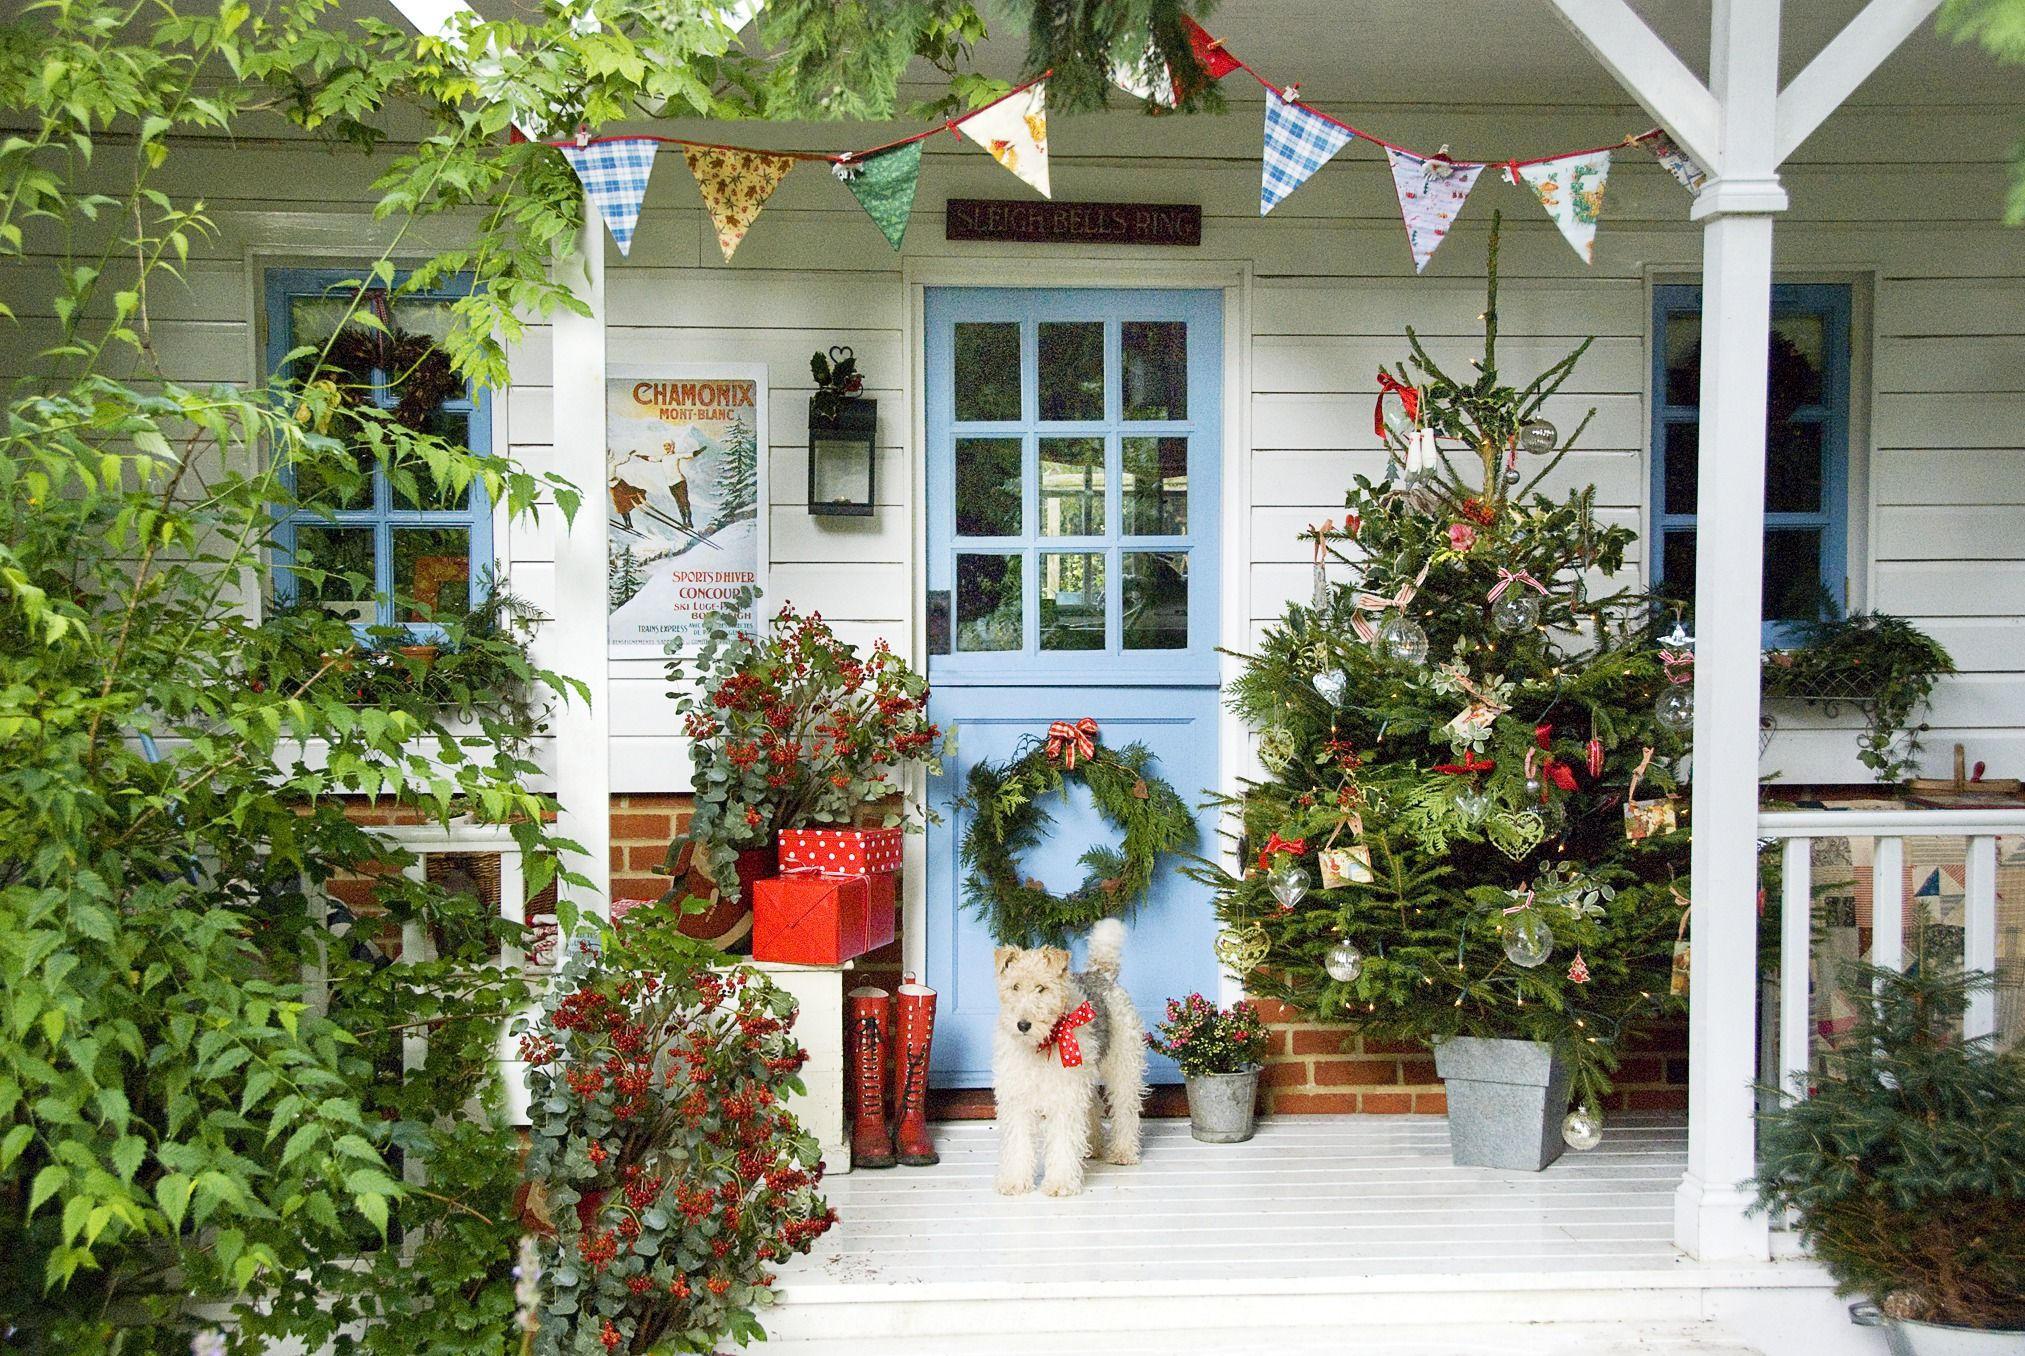 20 Best Christmas Porch Decorations 2019 , Outdoor Christmas